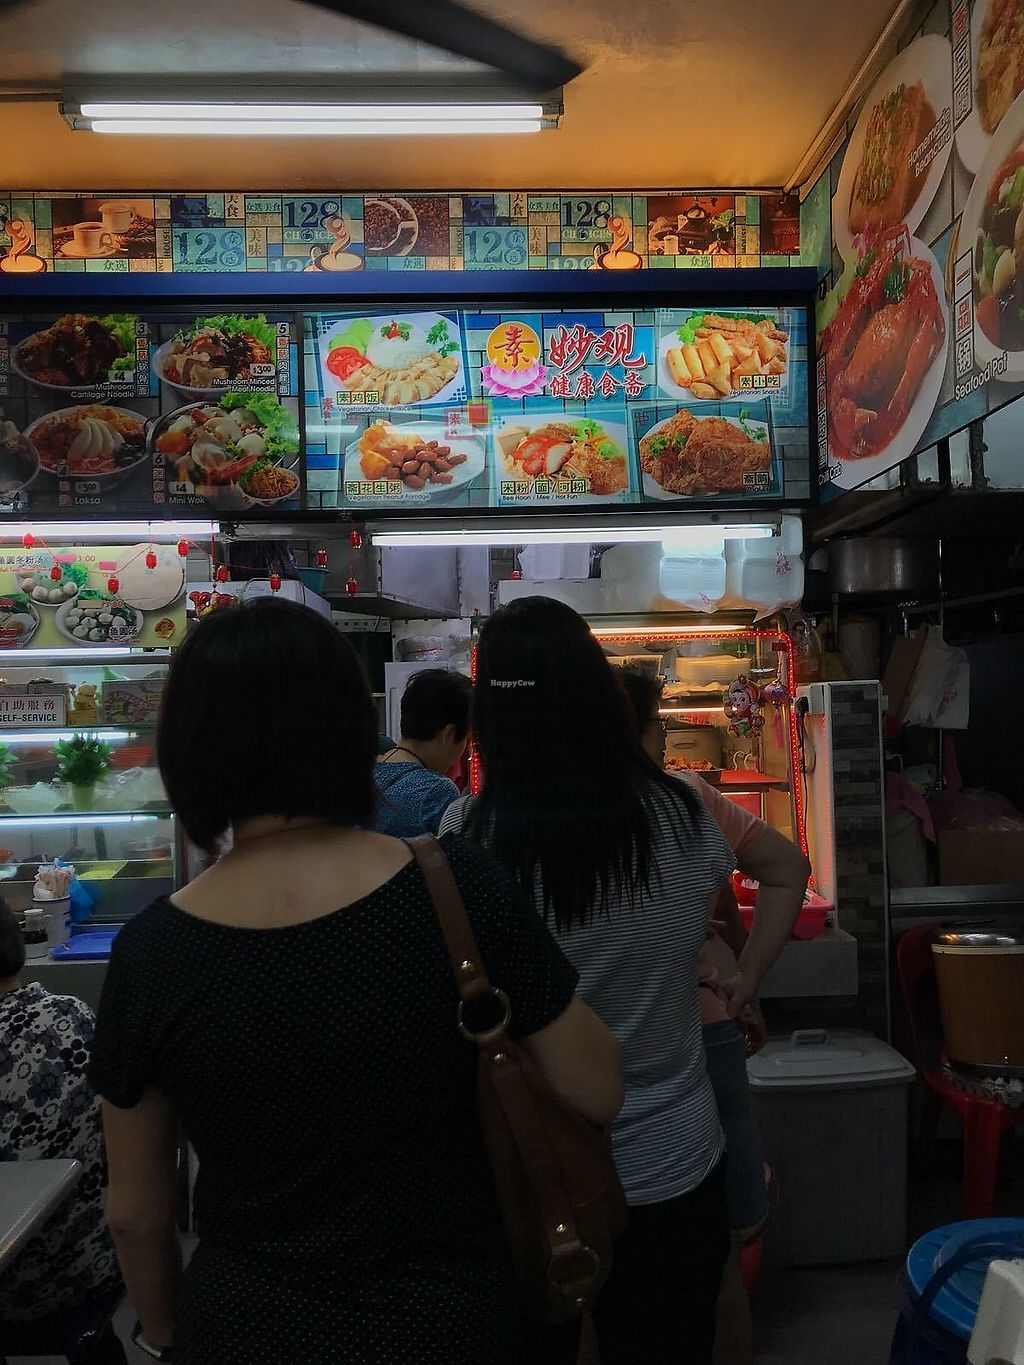 "Photo of Miao Guan Vegetarian Stall  by <a href=""/members/profile/CherylQuincy"">CherylQuincy</a> <br/>Stall front <br/> February 10, 2018  - <a href='/contact/abuse/image/91204/357127'>Report</a>"